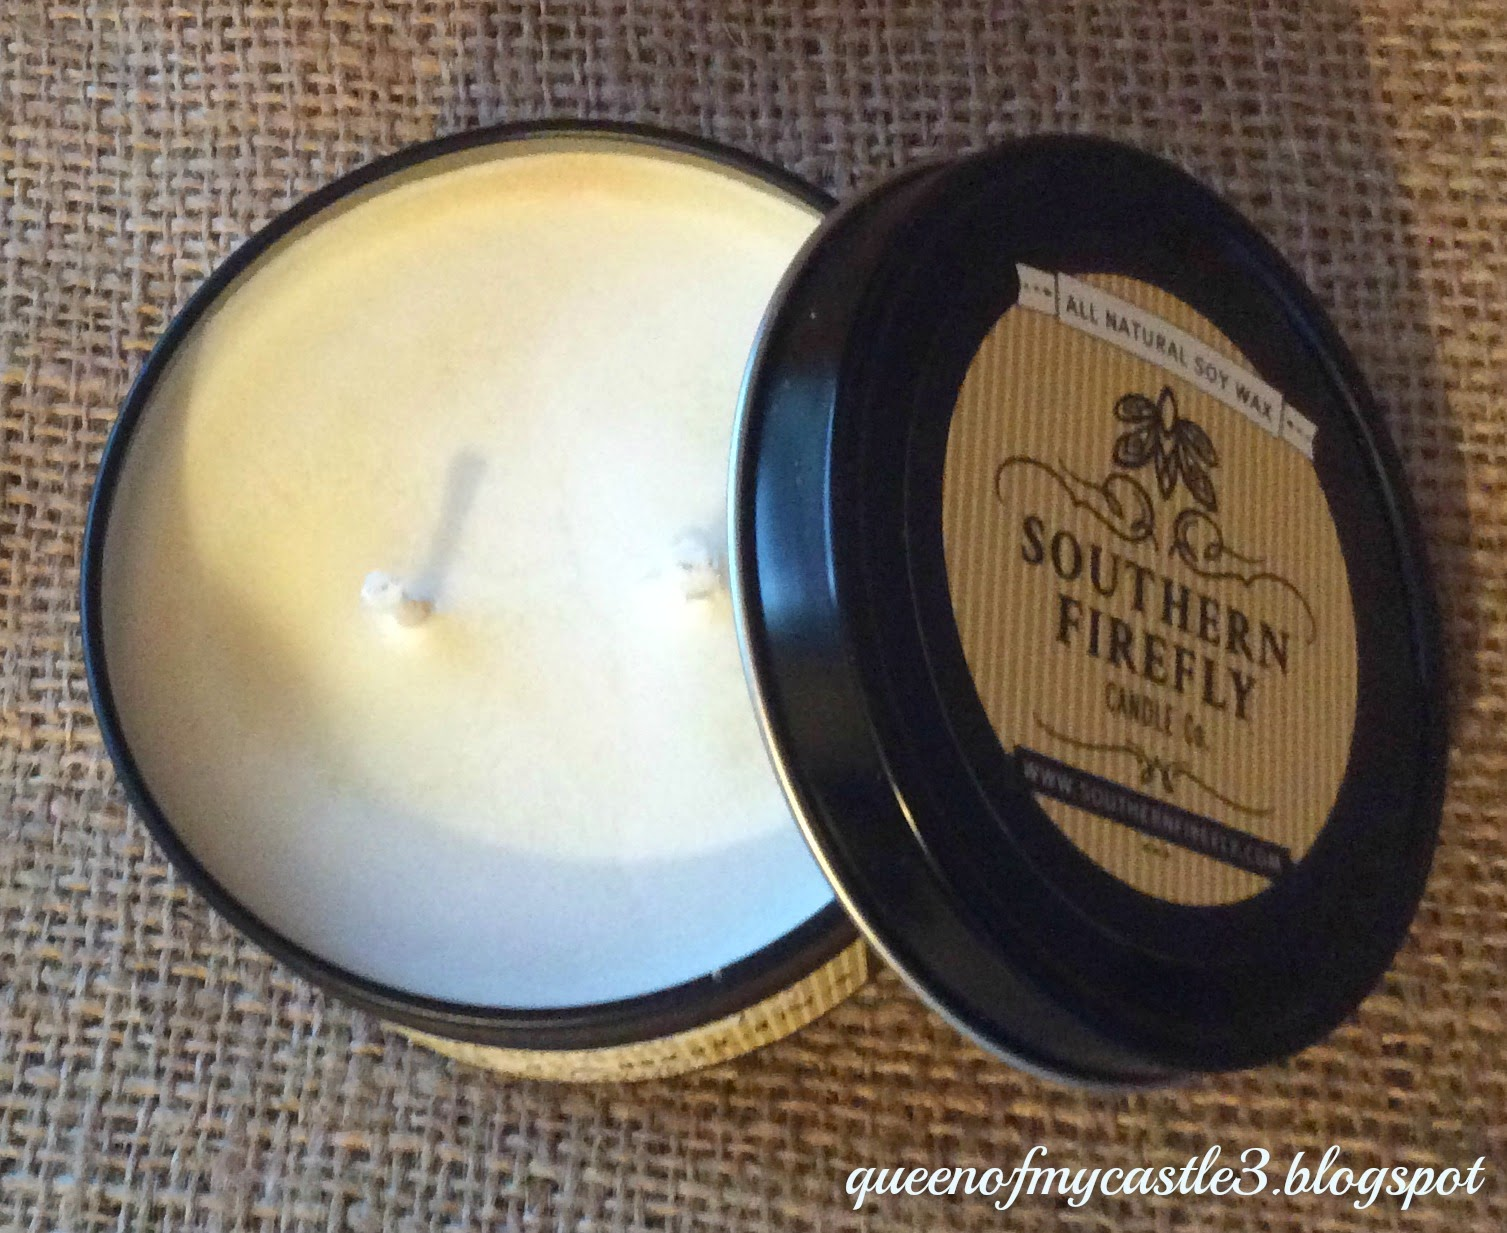 Southern Firefly Candle